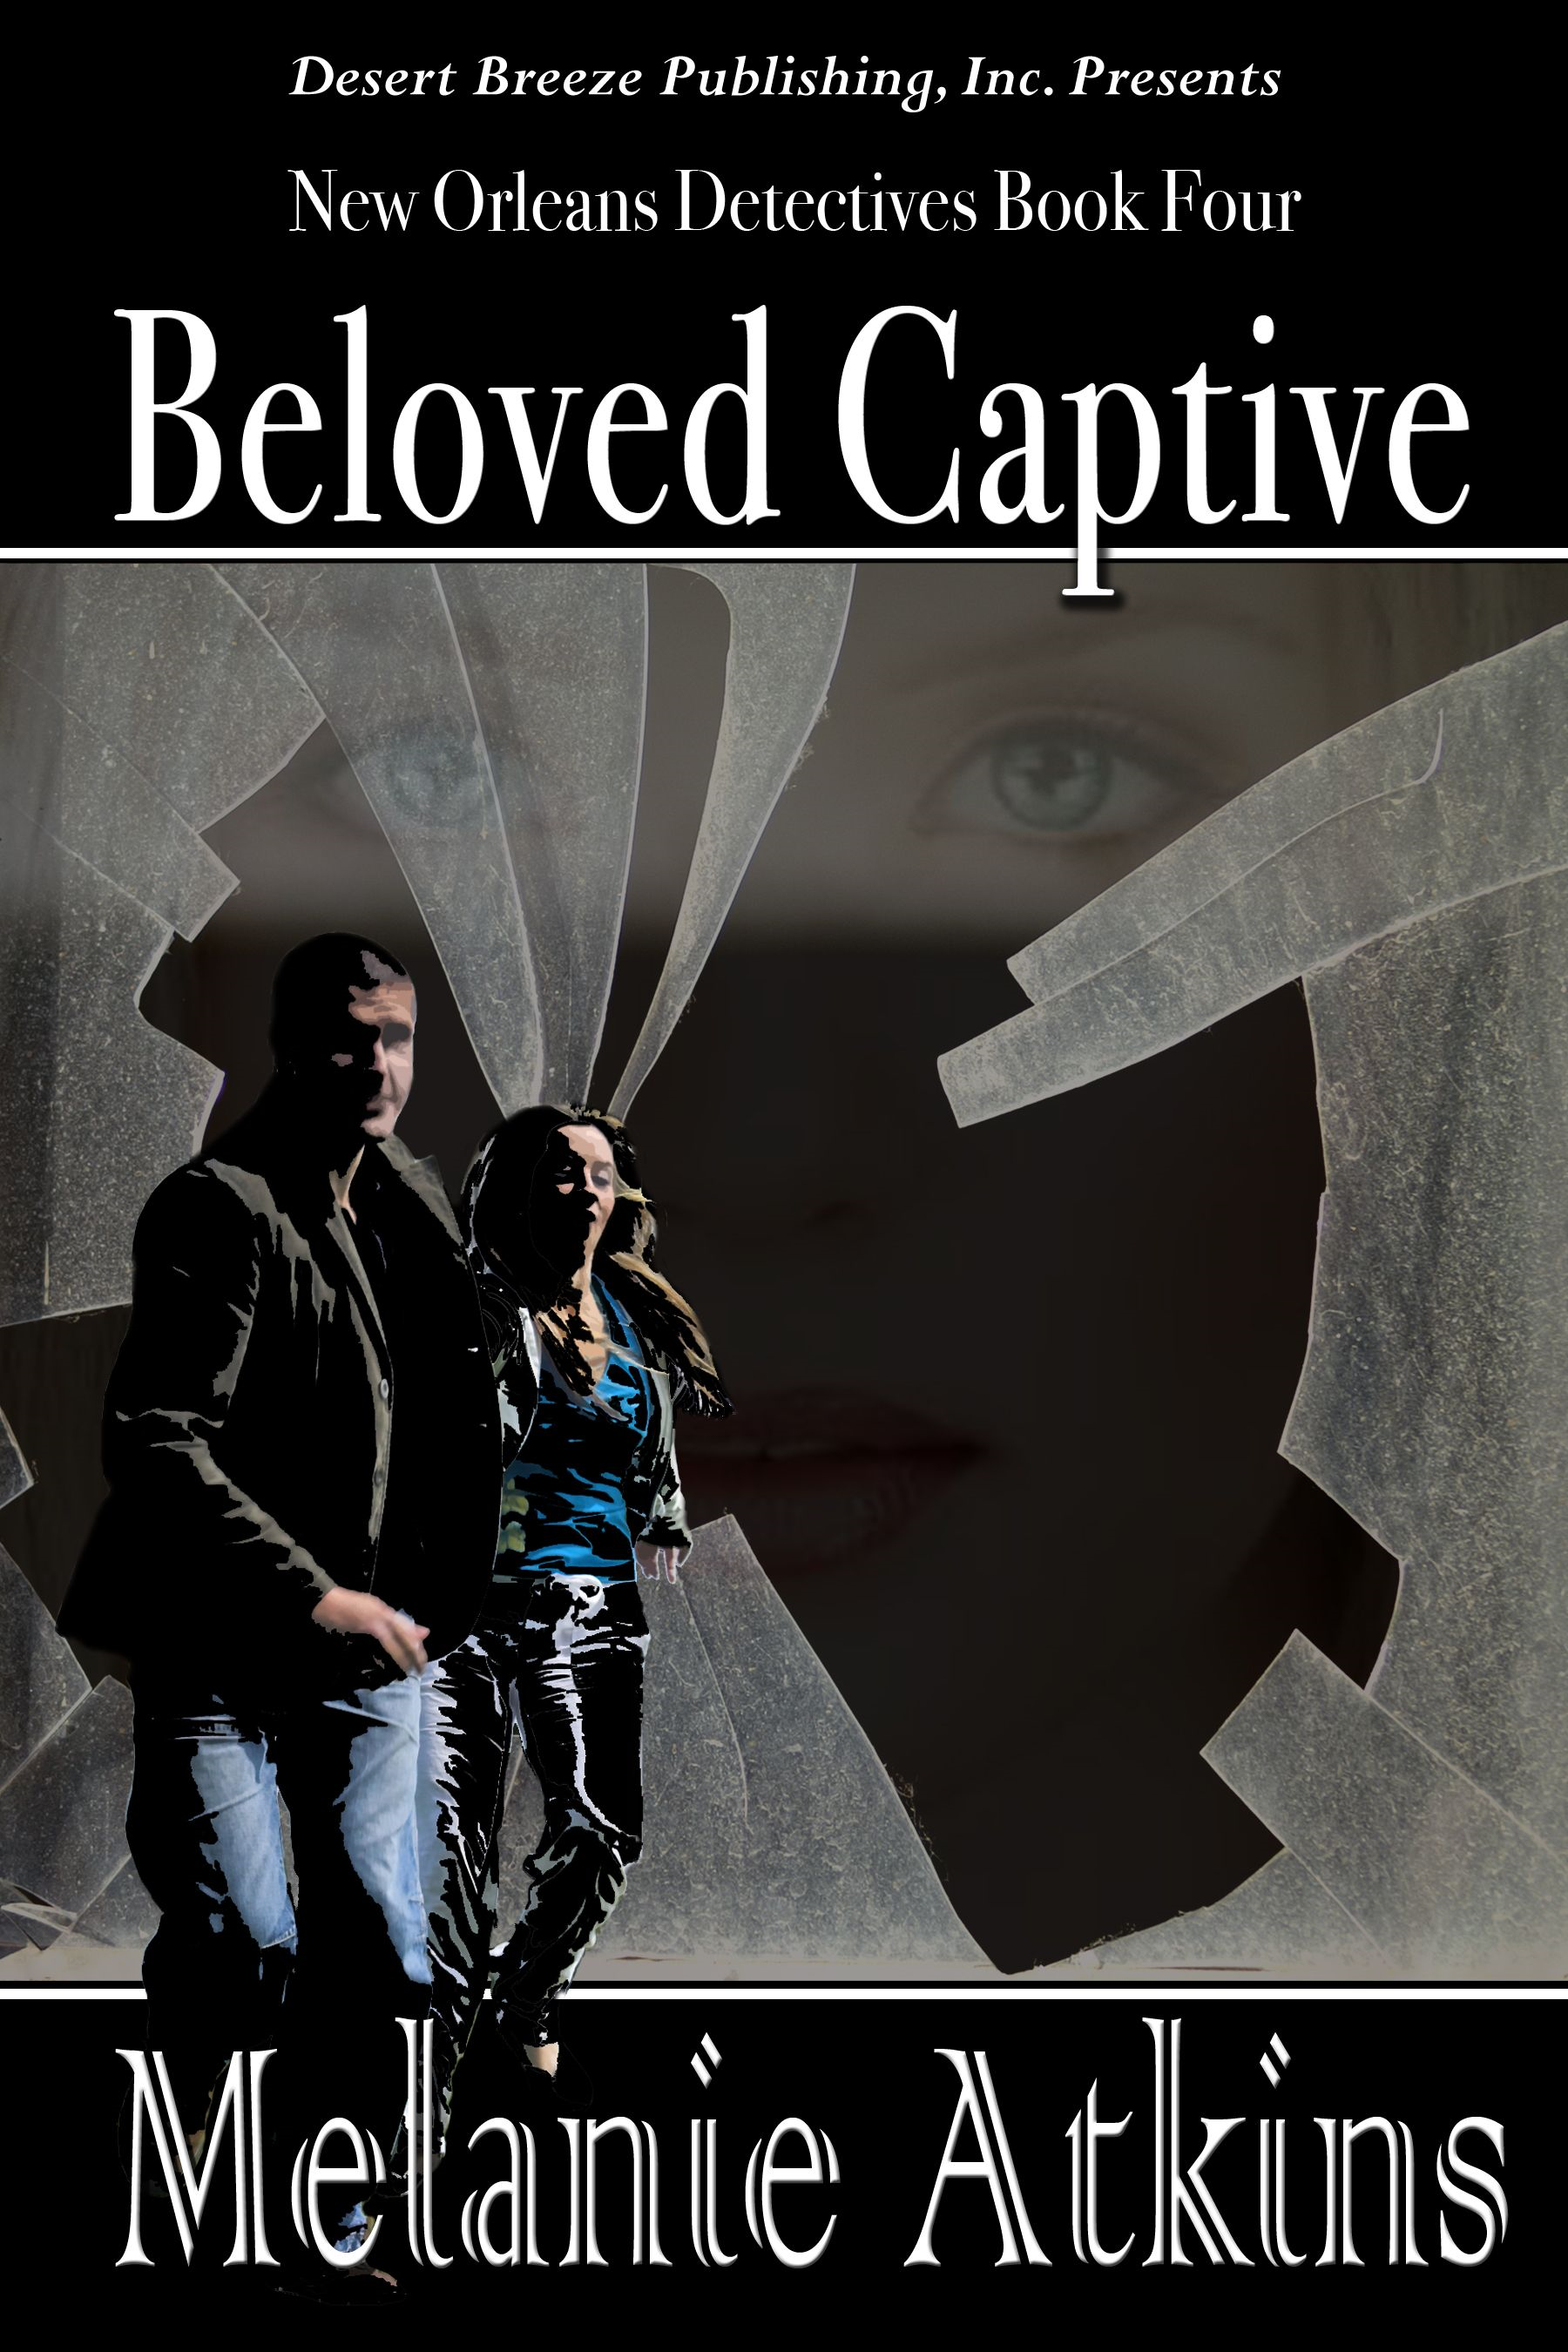 New Orleans Detectives Book Four: Beloved Captive By: Melanie Atkins